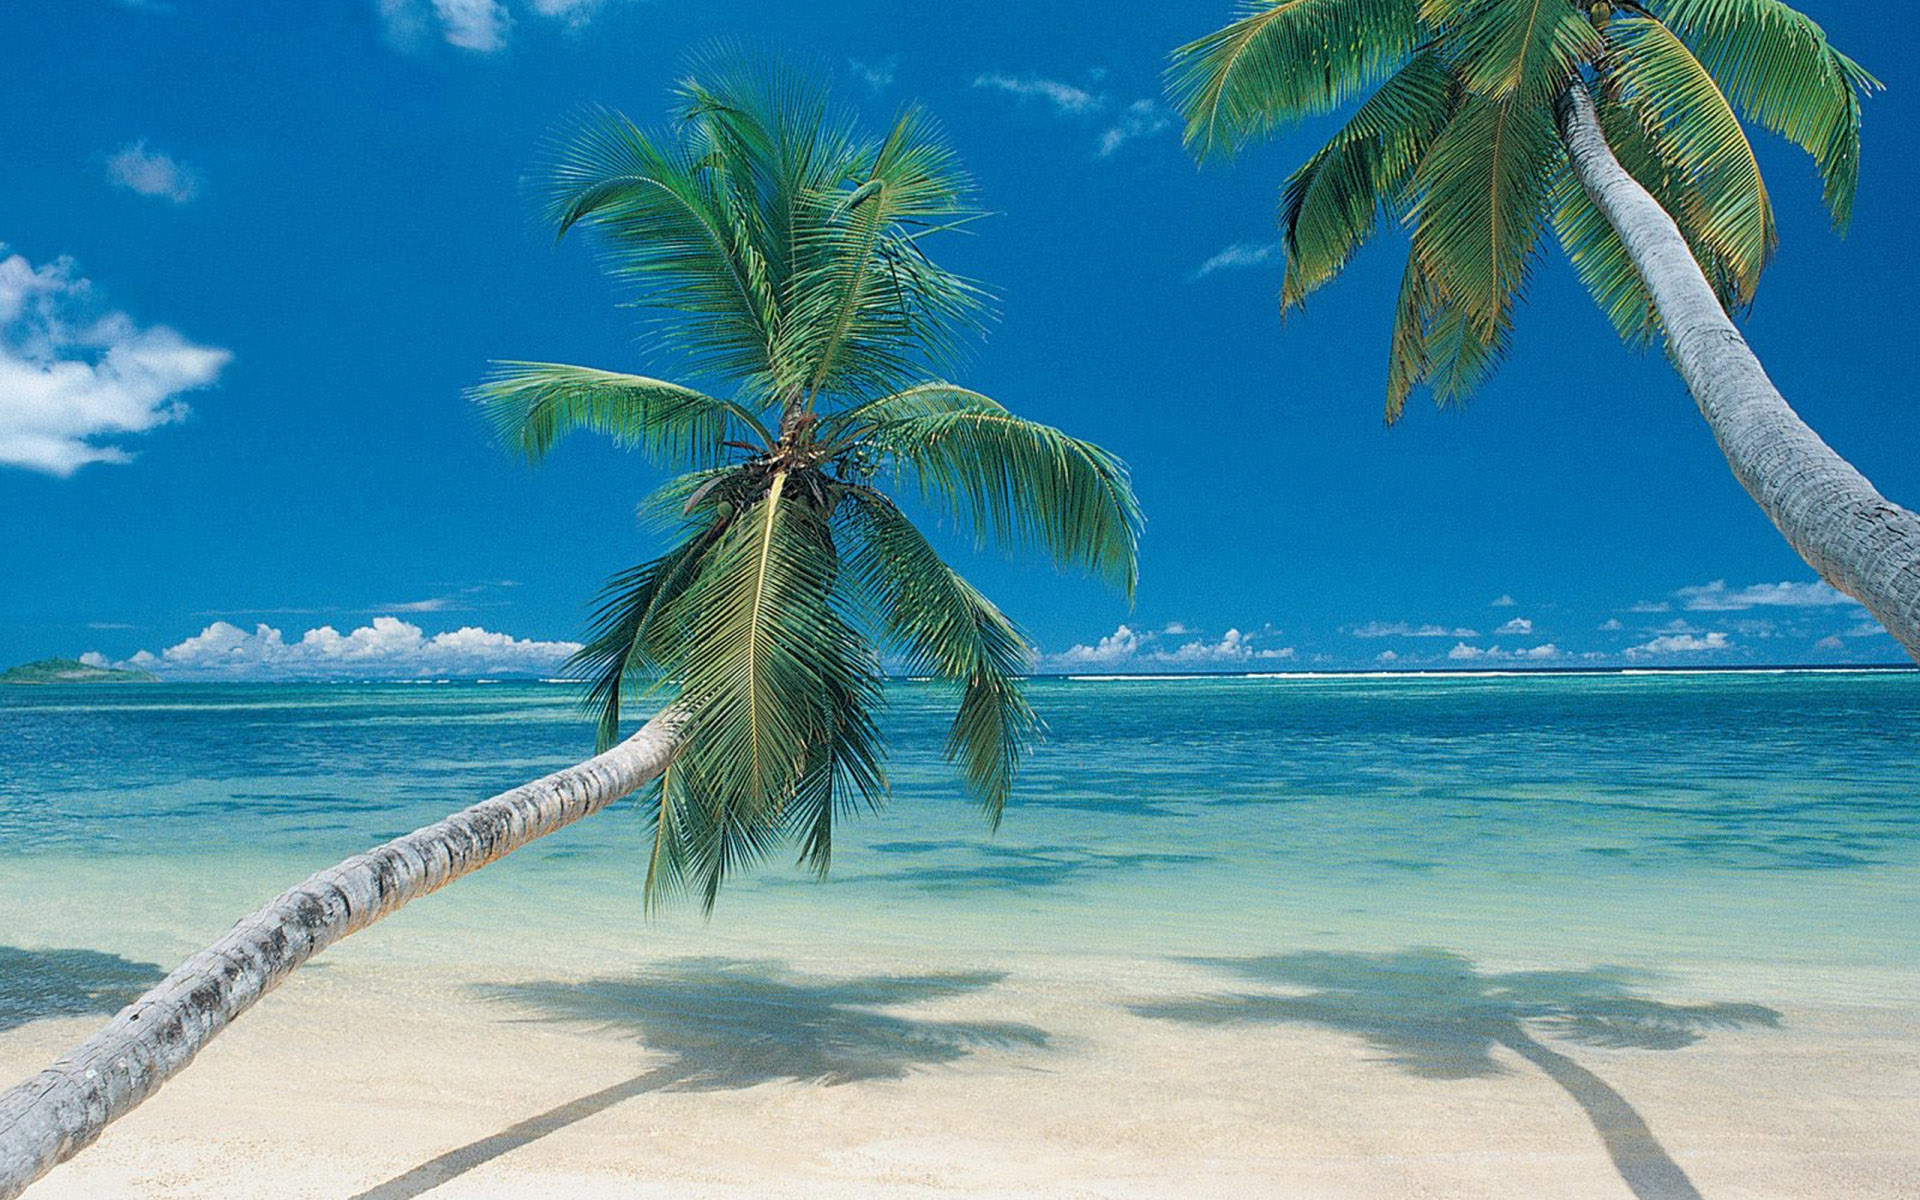 Palm Trees On Beach 1920x1200 Wallpapers 1920x1200 Wallpapers 1920x1200